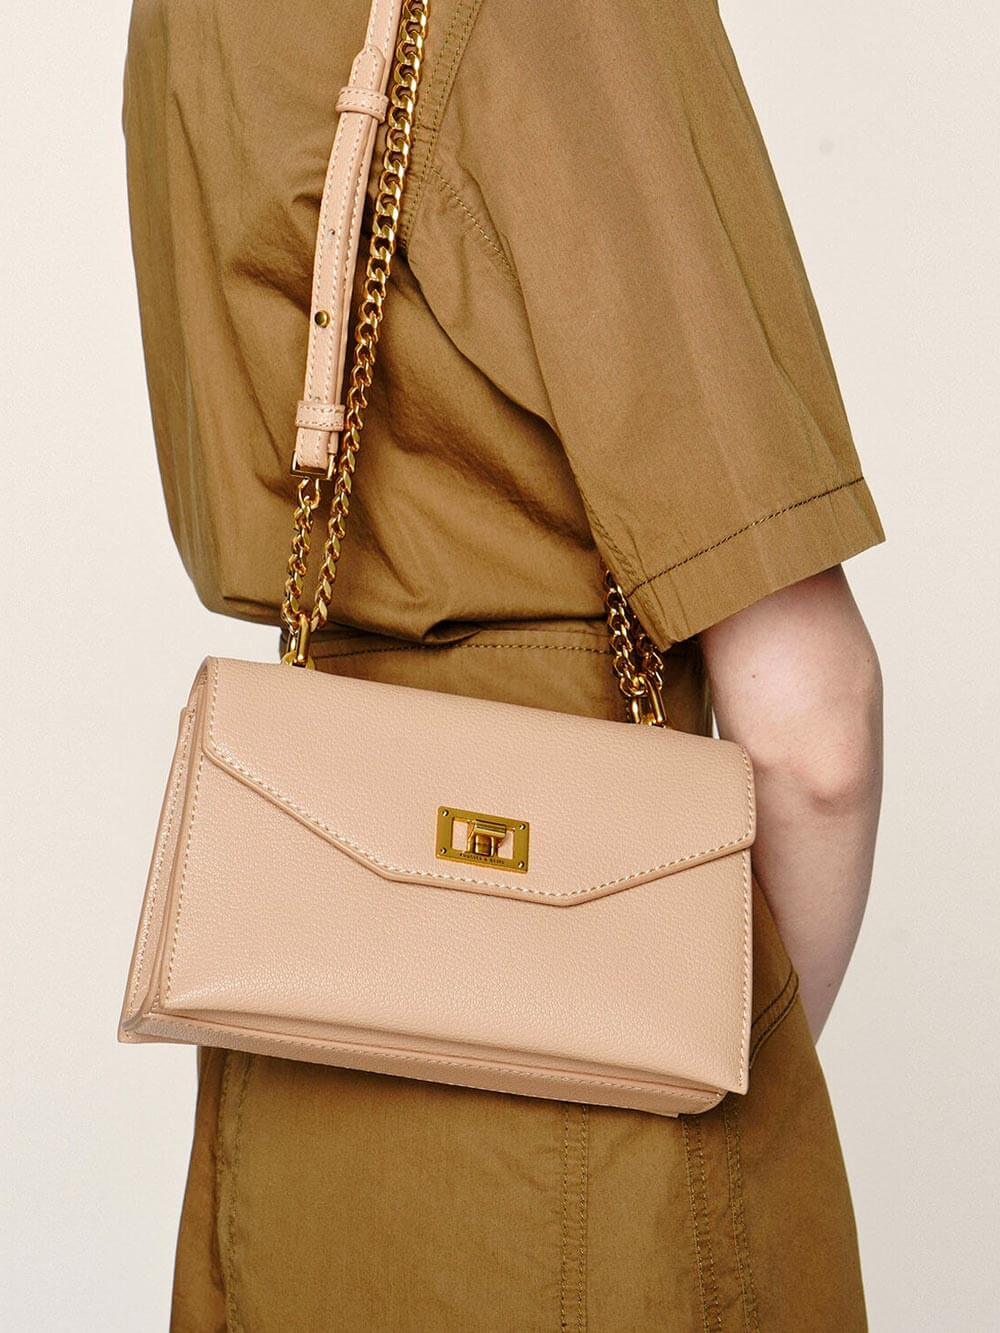 Turn-Lock Crossbody Bag